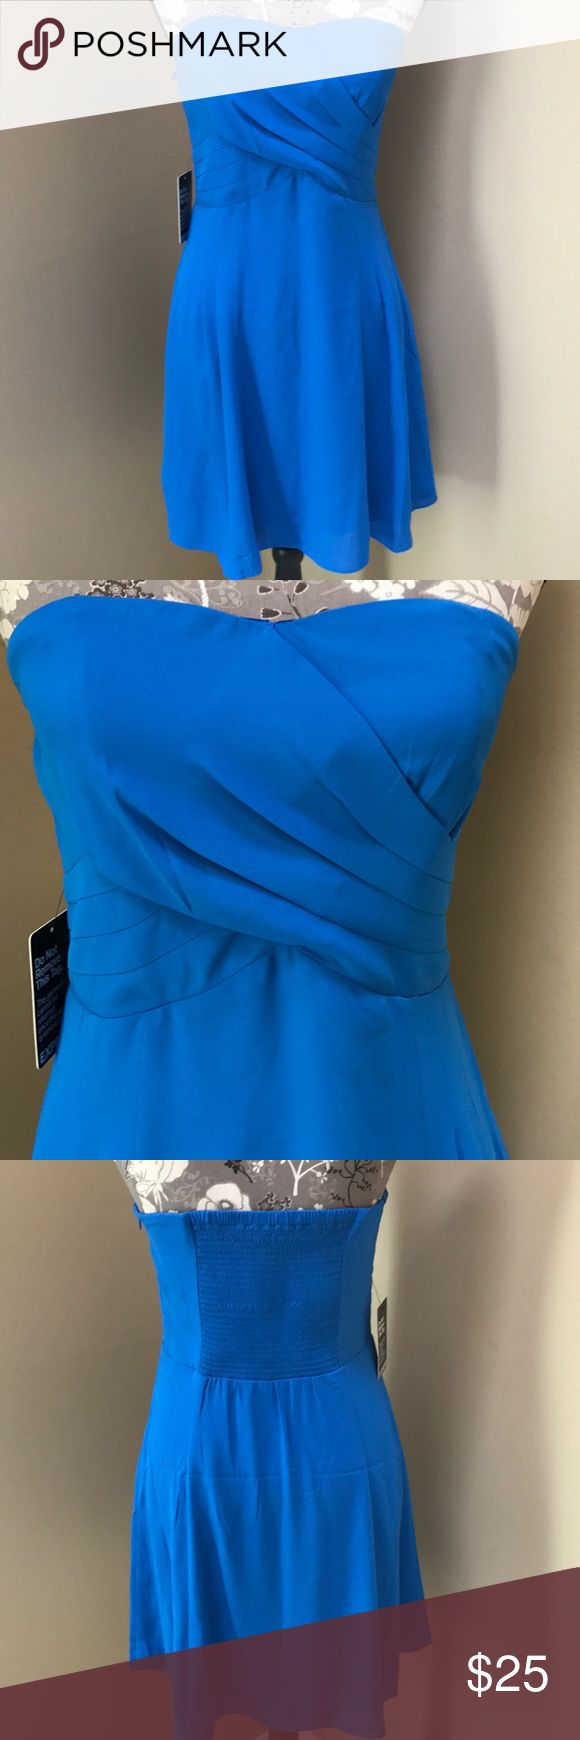 """NWT Express Strapless Mini Dress NWT Express Strapless blue Mini Dress size 6. Super cute dress with pleats and side zip. Lined.14"""" across the chest and 28"""" long.  Great for upcoming dances. Express Dresses"""